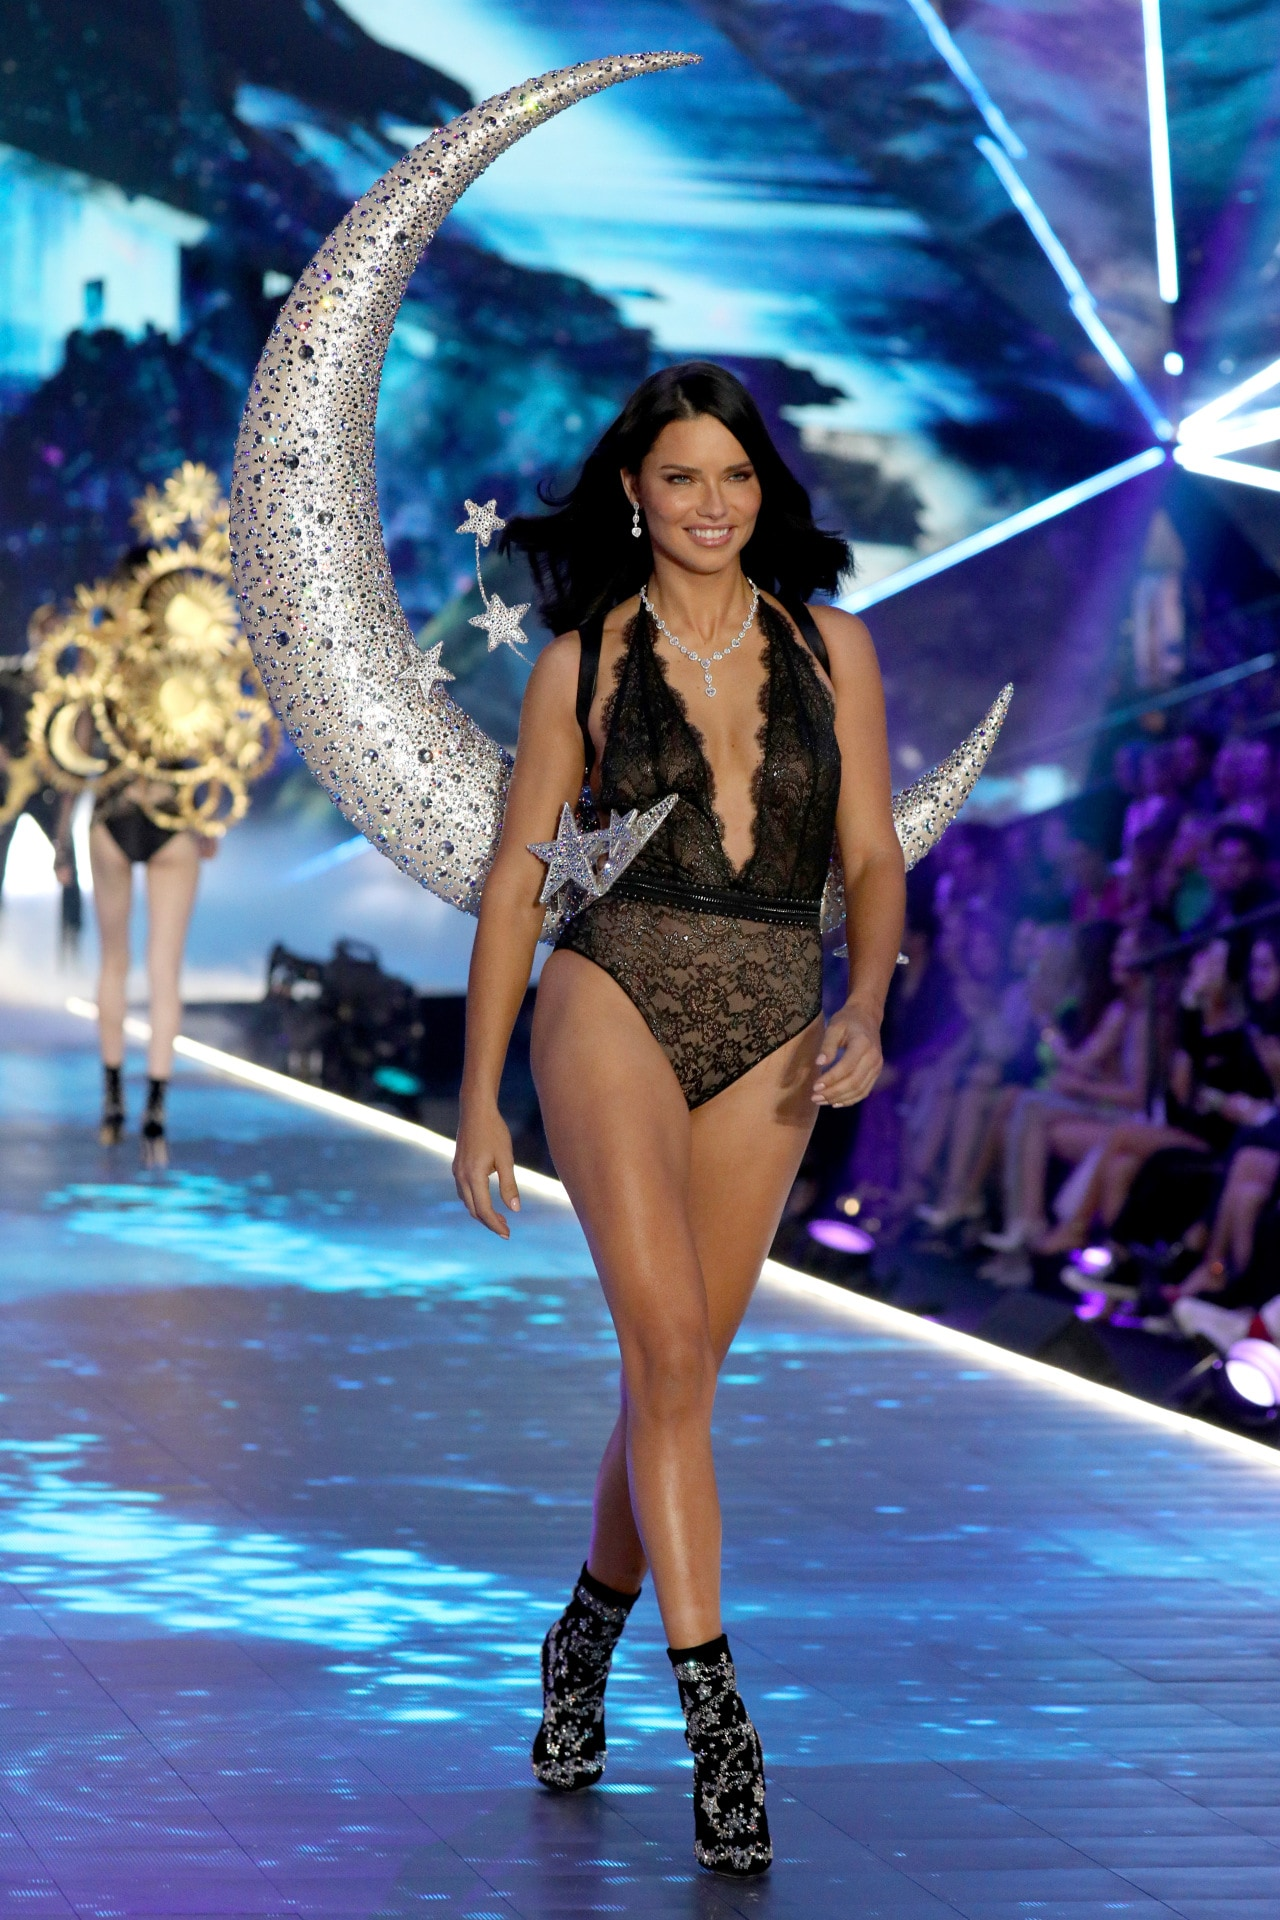 Adriana Lima tried a new exercise and beauty regimen for the 2018 Victoria's Secret Fashion Show